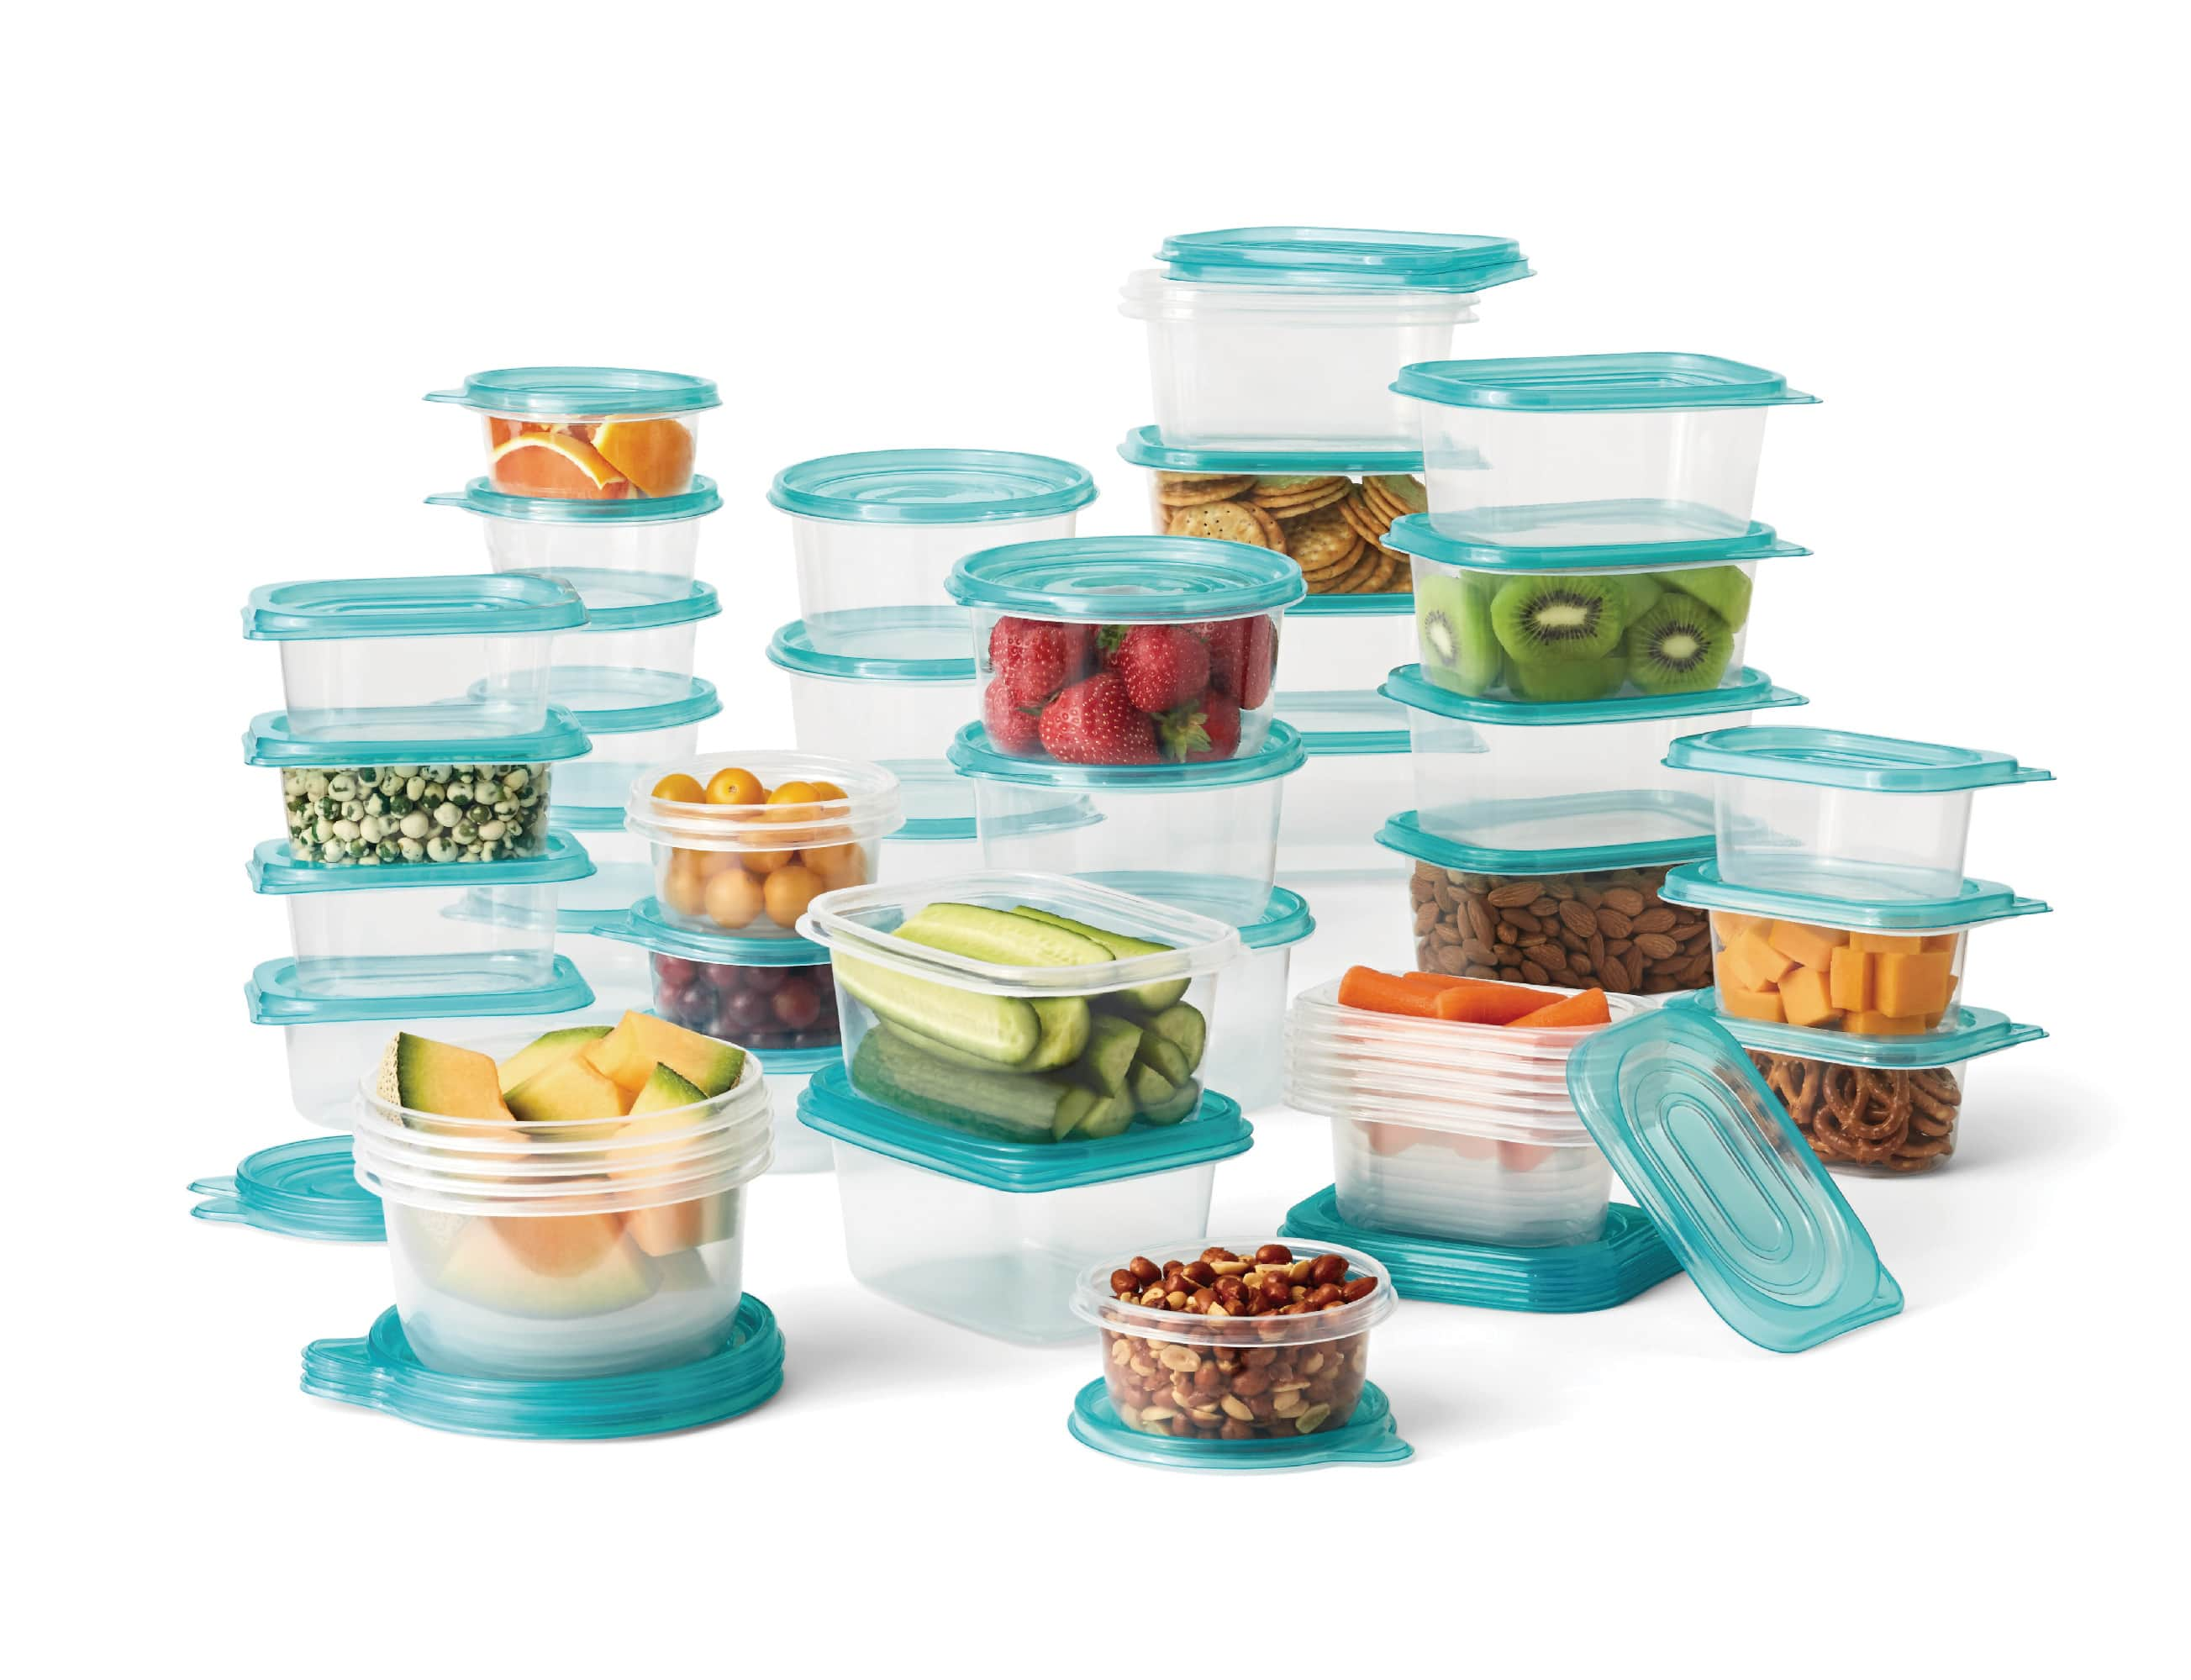 Mainstays 92 Piece Food Storage Container Set $8.96